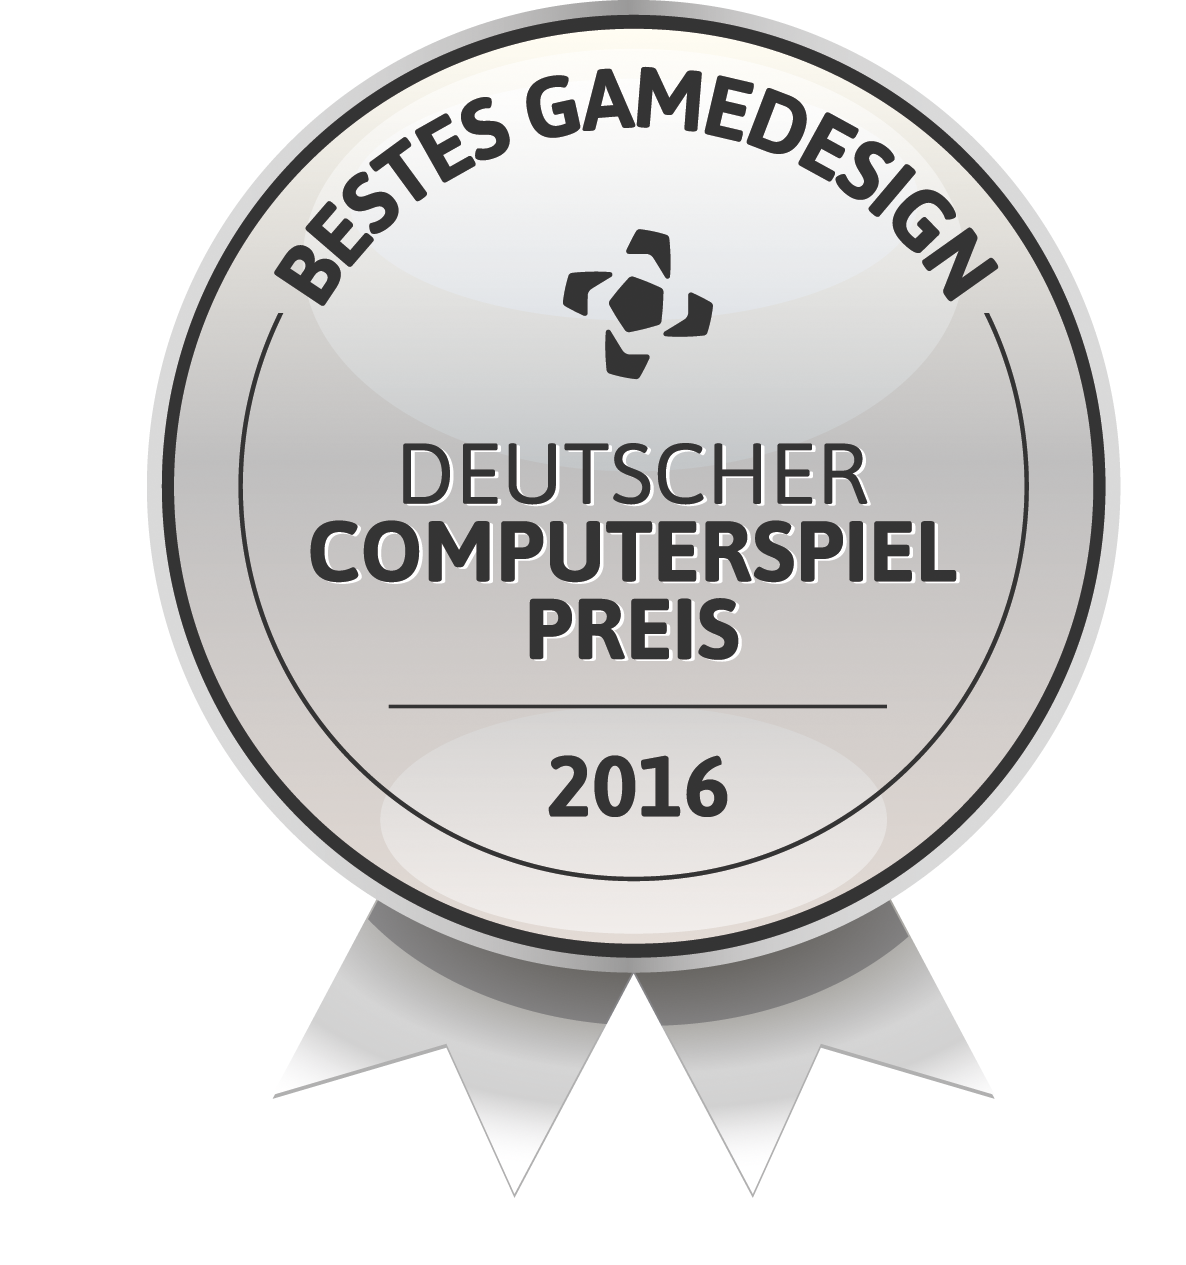 DCP_bestesgamesdesign_2016_gr.png